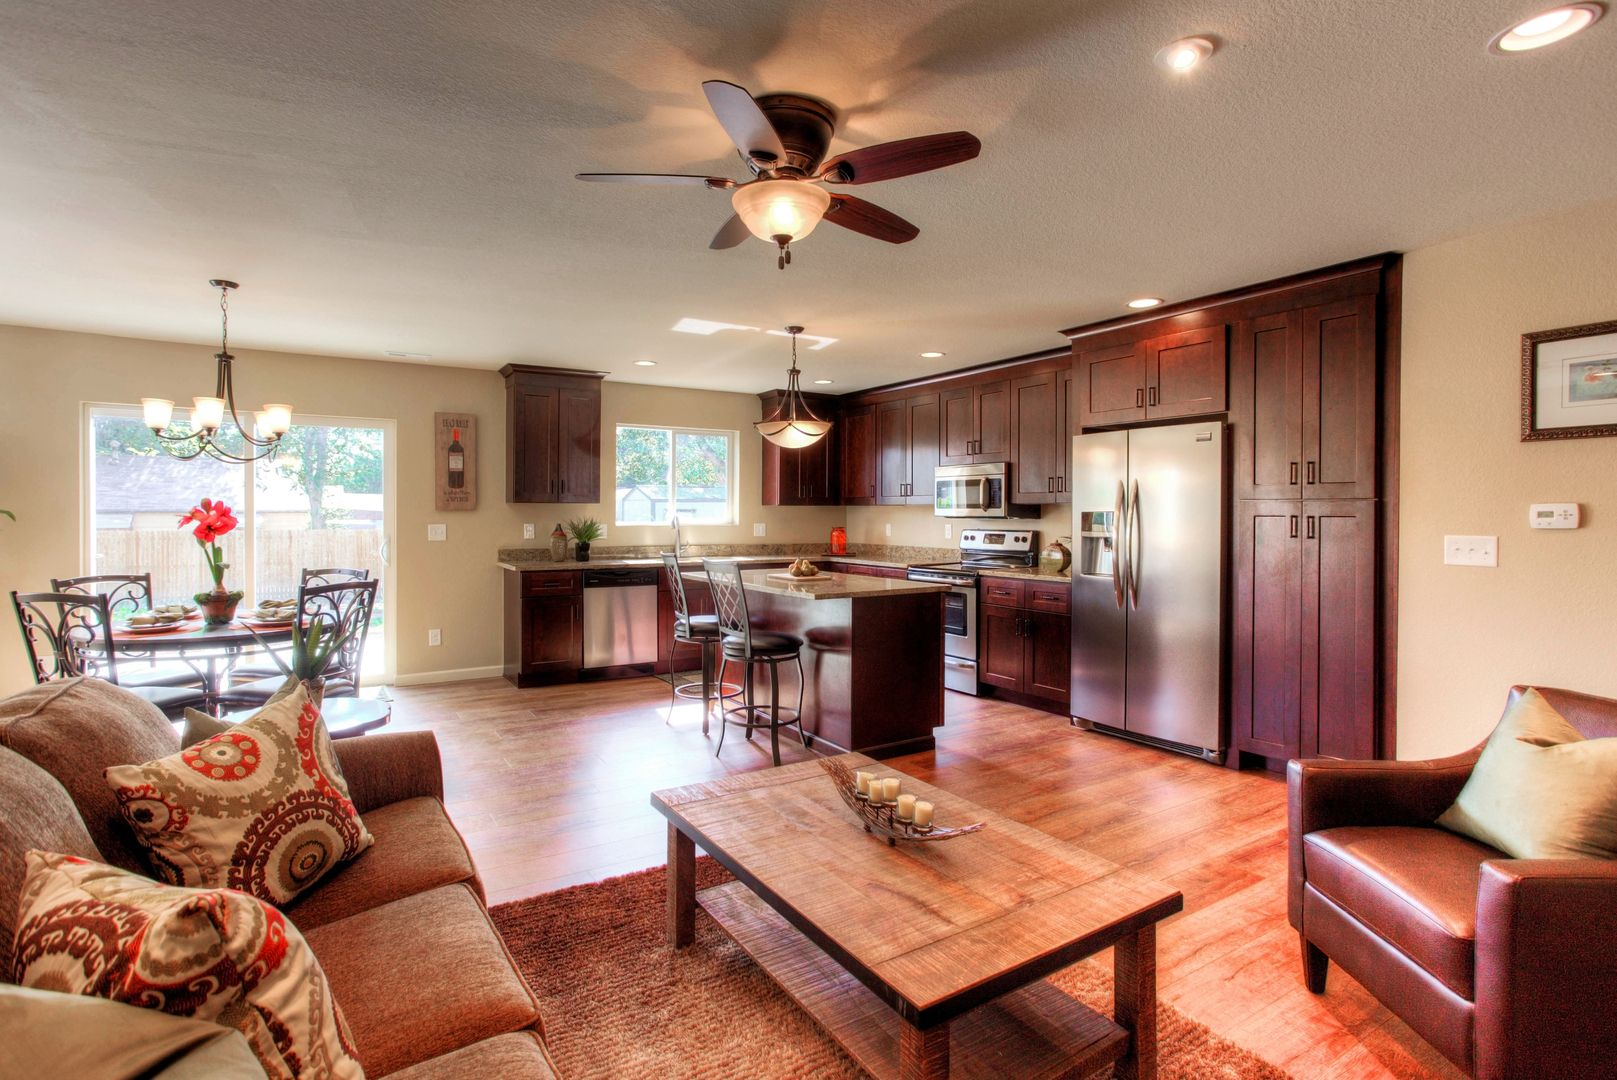 S1 Gallery   Affordable kitchen cabinets, Semi custom ...